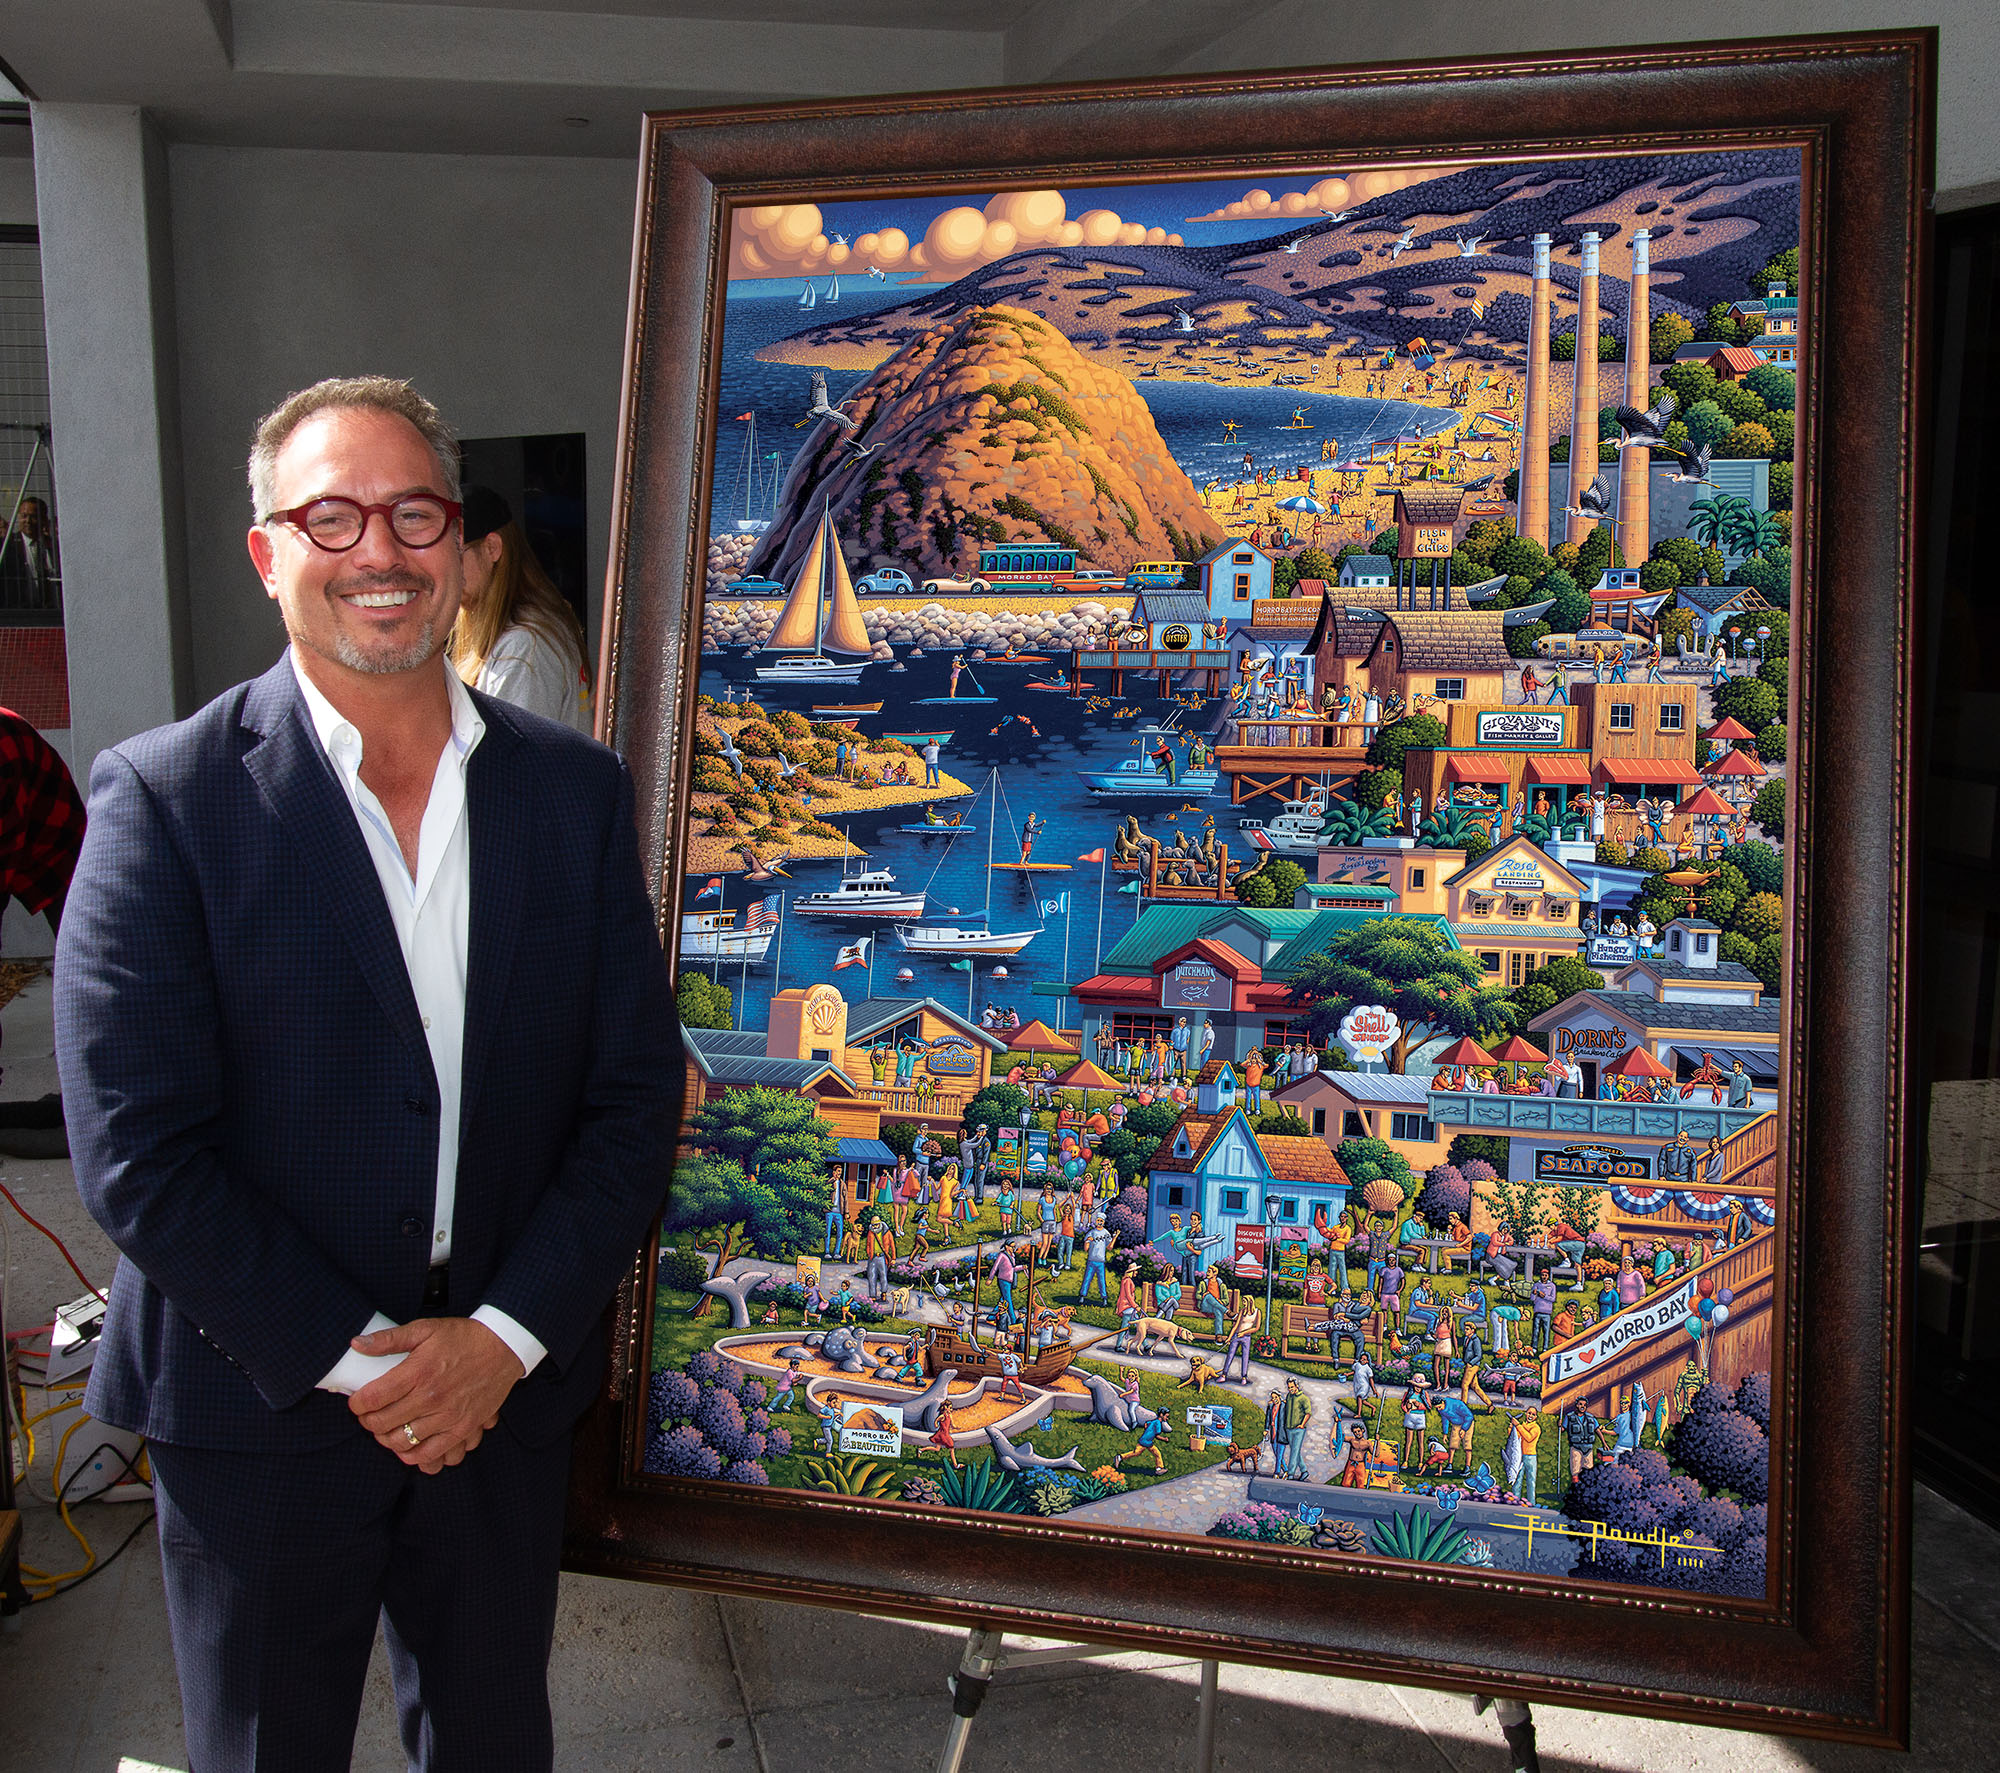 Eric Dowdle and the Morro Bay Puzzle